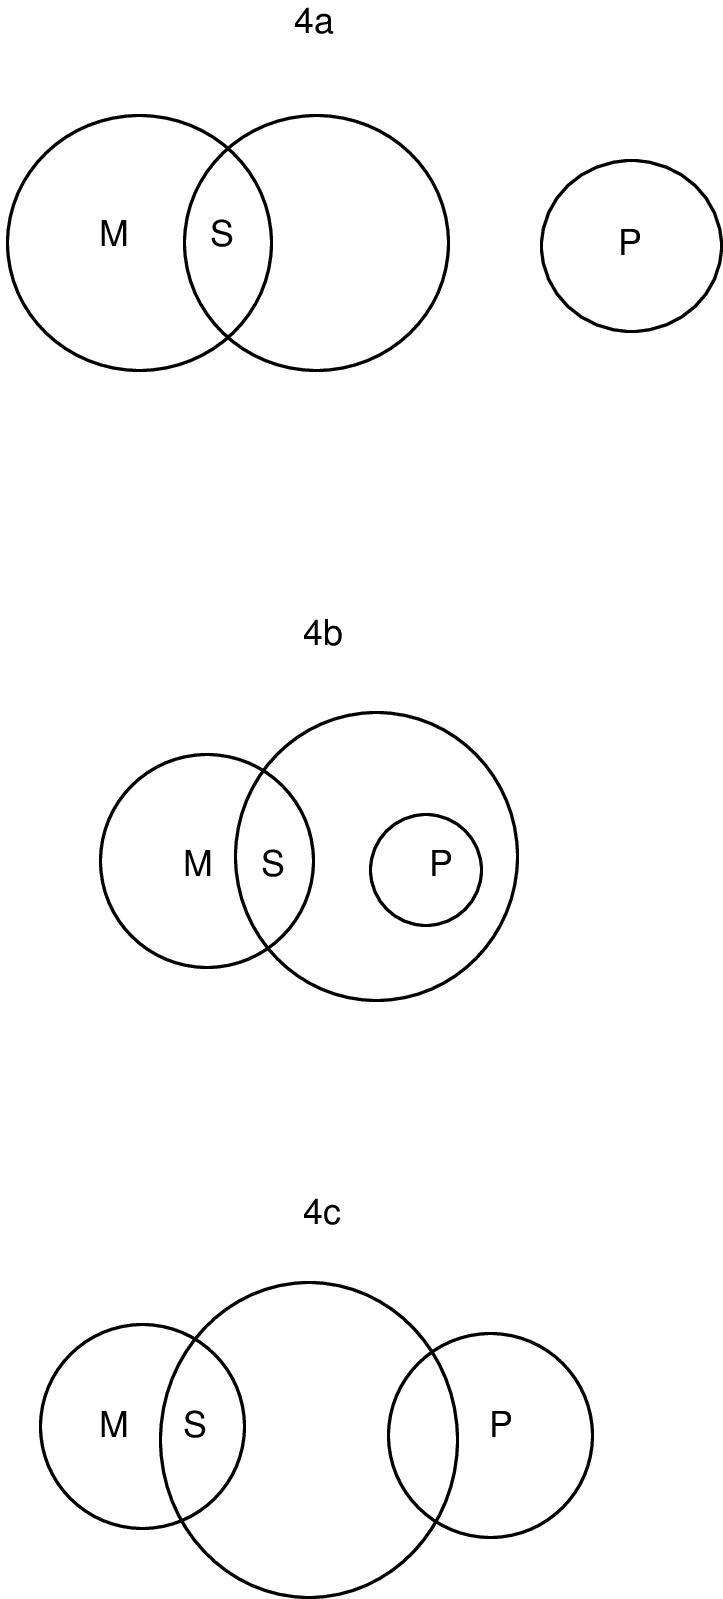 hight resolution of euler s diagrams for the ei 1 syllogism